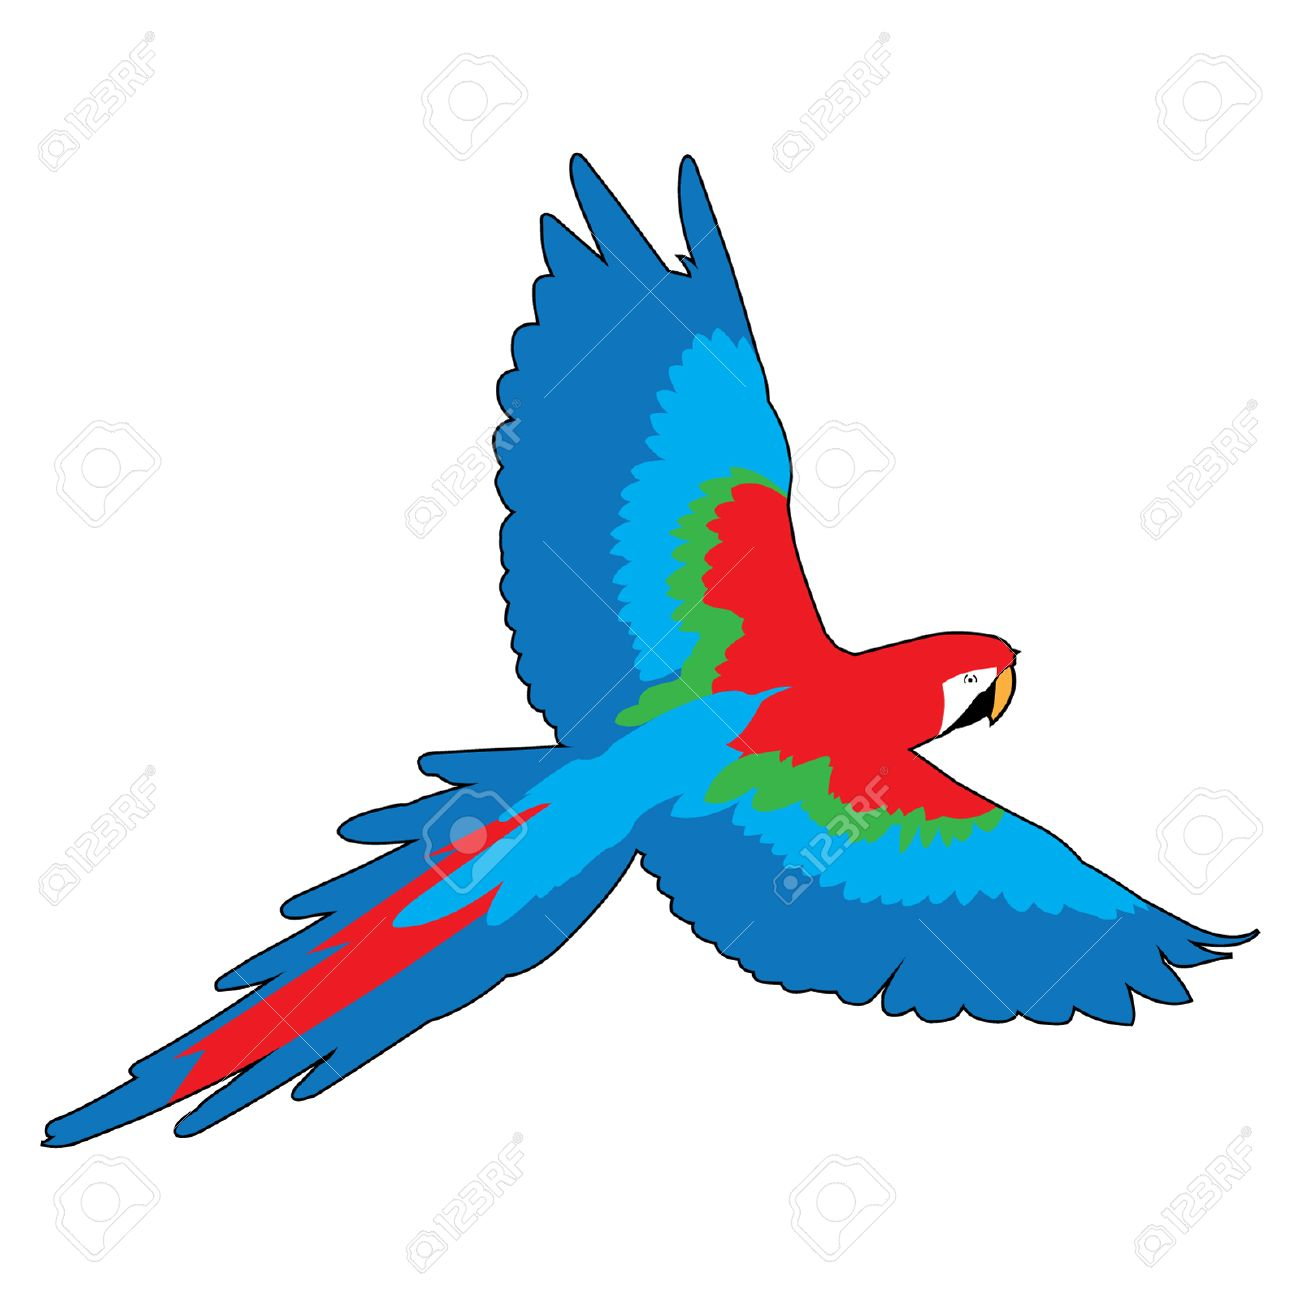 Flying parrot clipart 3 » Clipart Station.